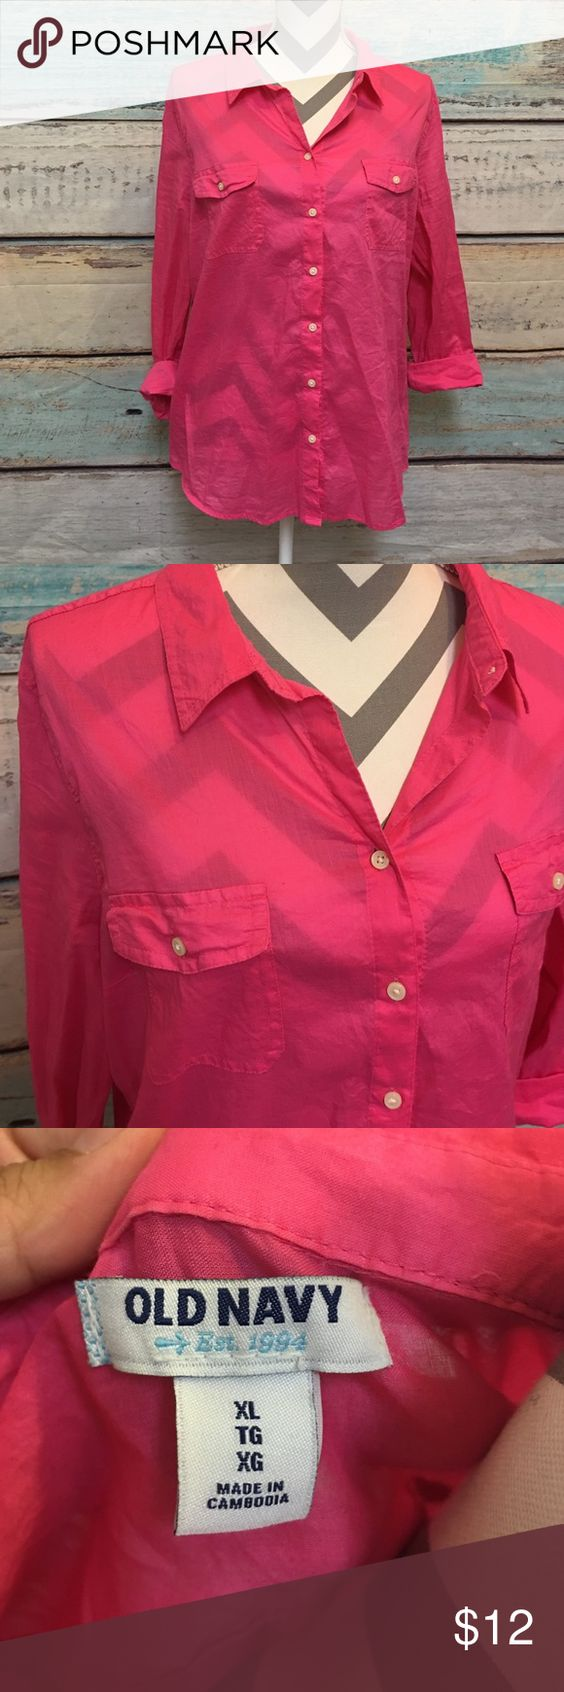 3/4 length sleeve Button up! Light weight hot pink button up from Od Navy. Only worn once. Great condition no flaws. Old Navy Tops Button Down Shirts